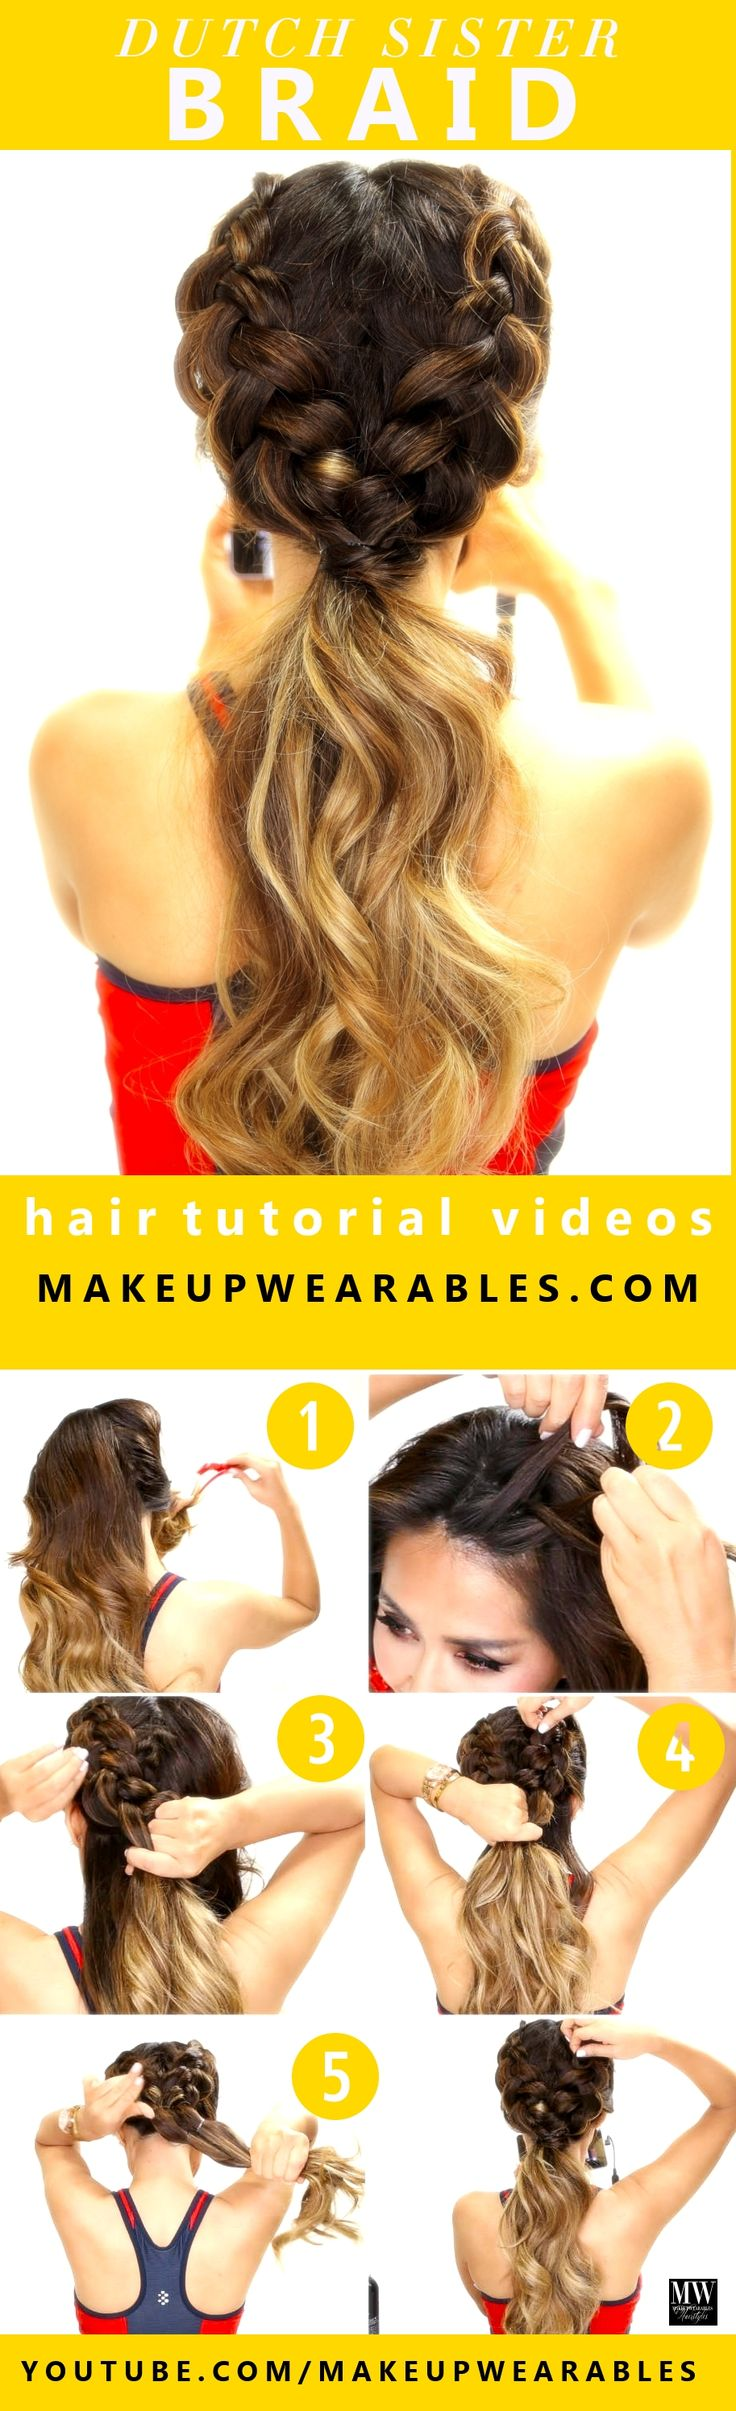 Summer Hairstyles How To Easy Dutch Braid Workout Hairstyles For